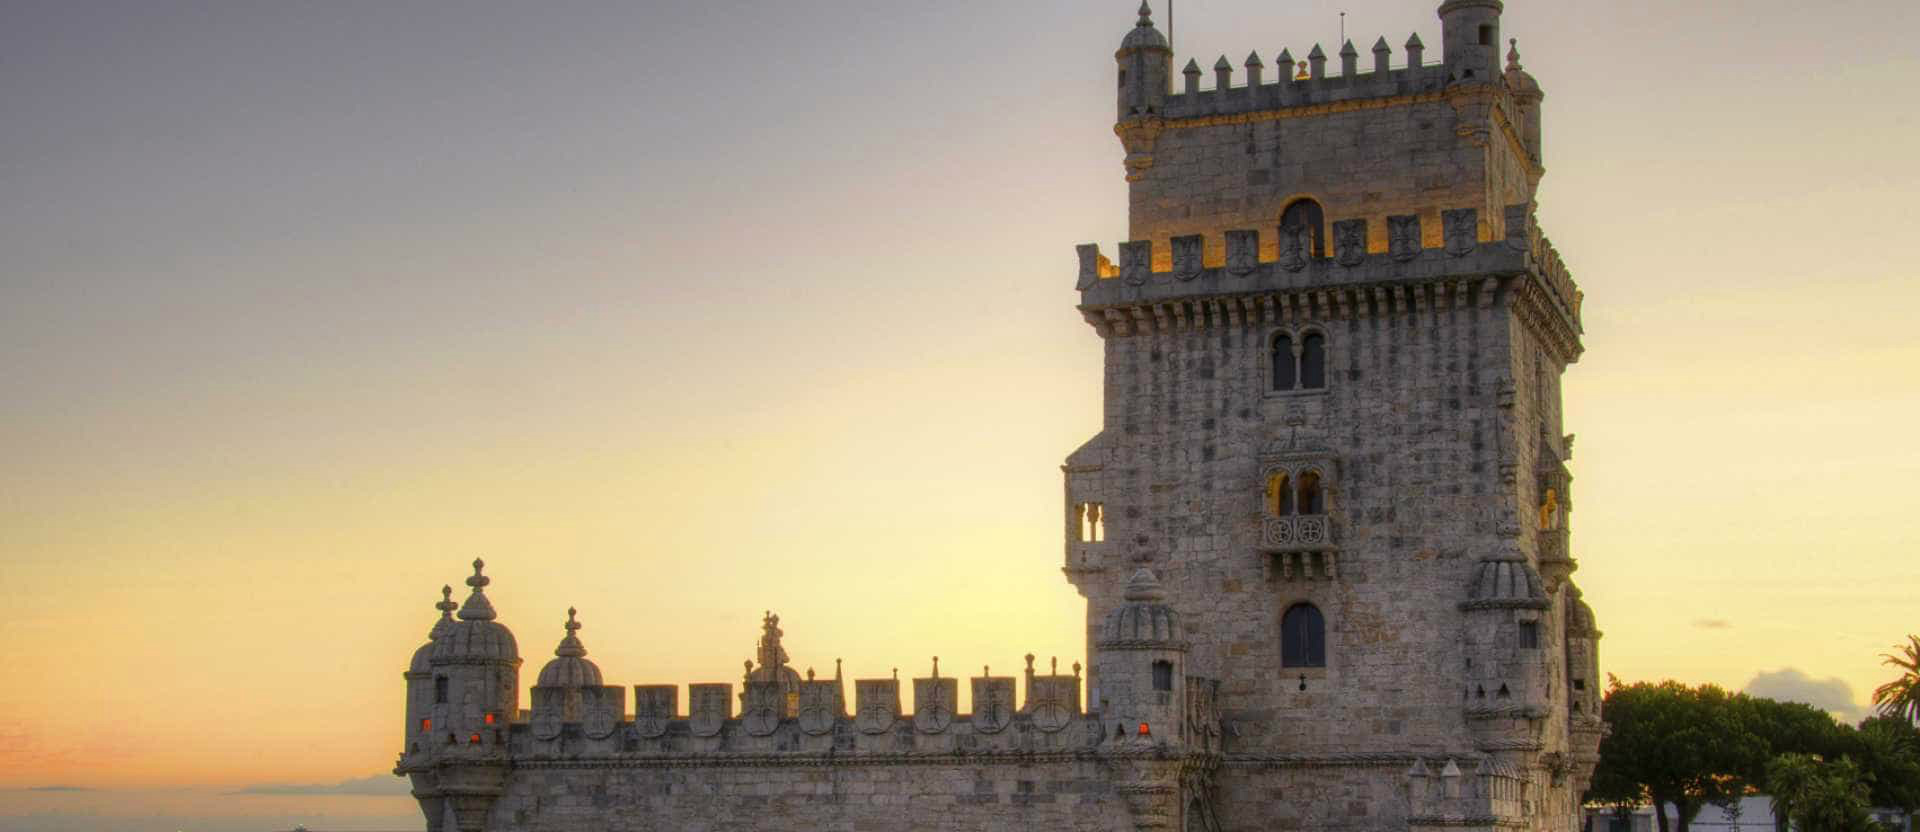 Belém what to do in lisbon What To Do In Lisbon: 48 Hours In The Capital Carrocel 3 50